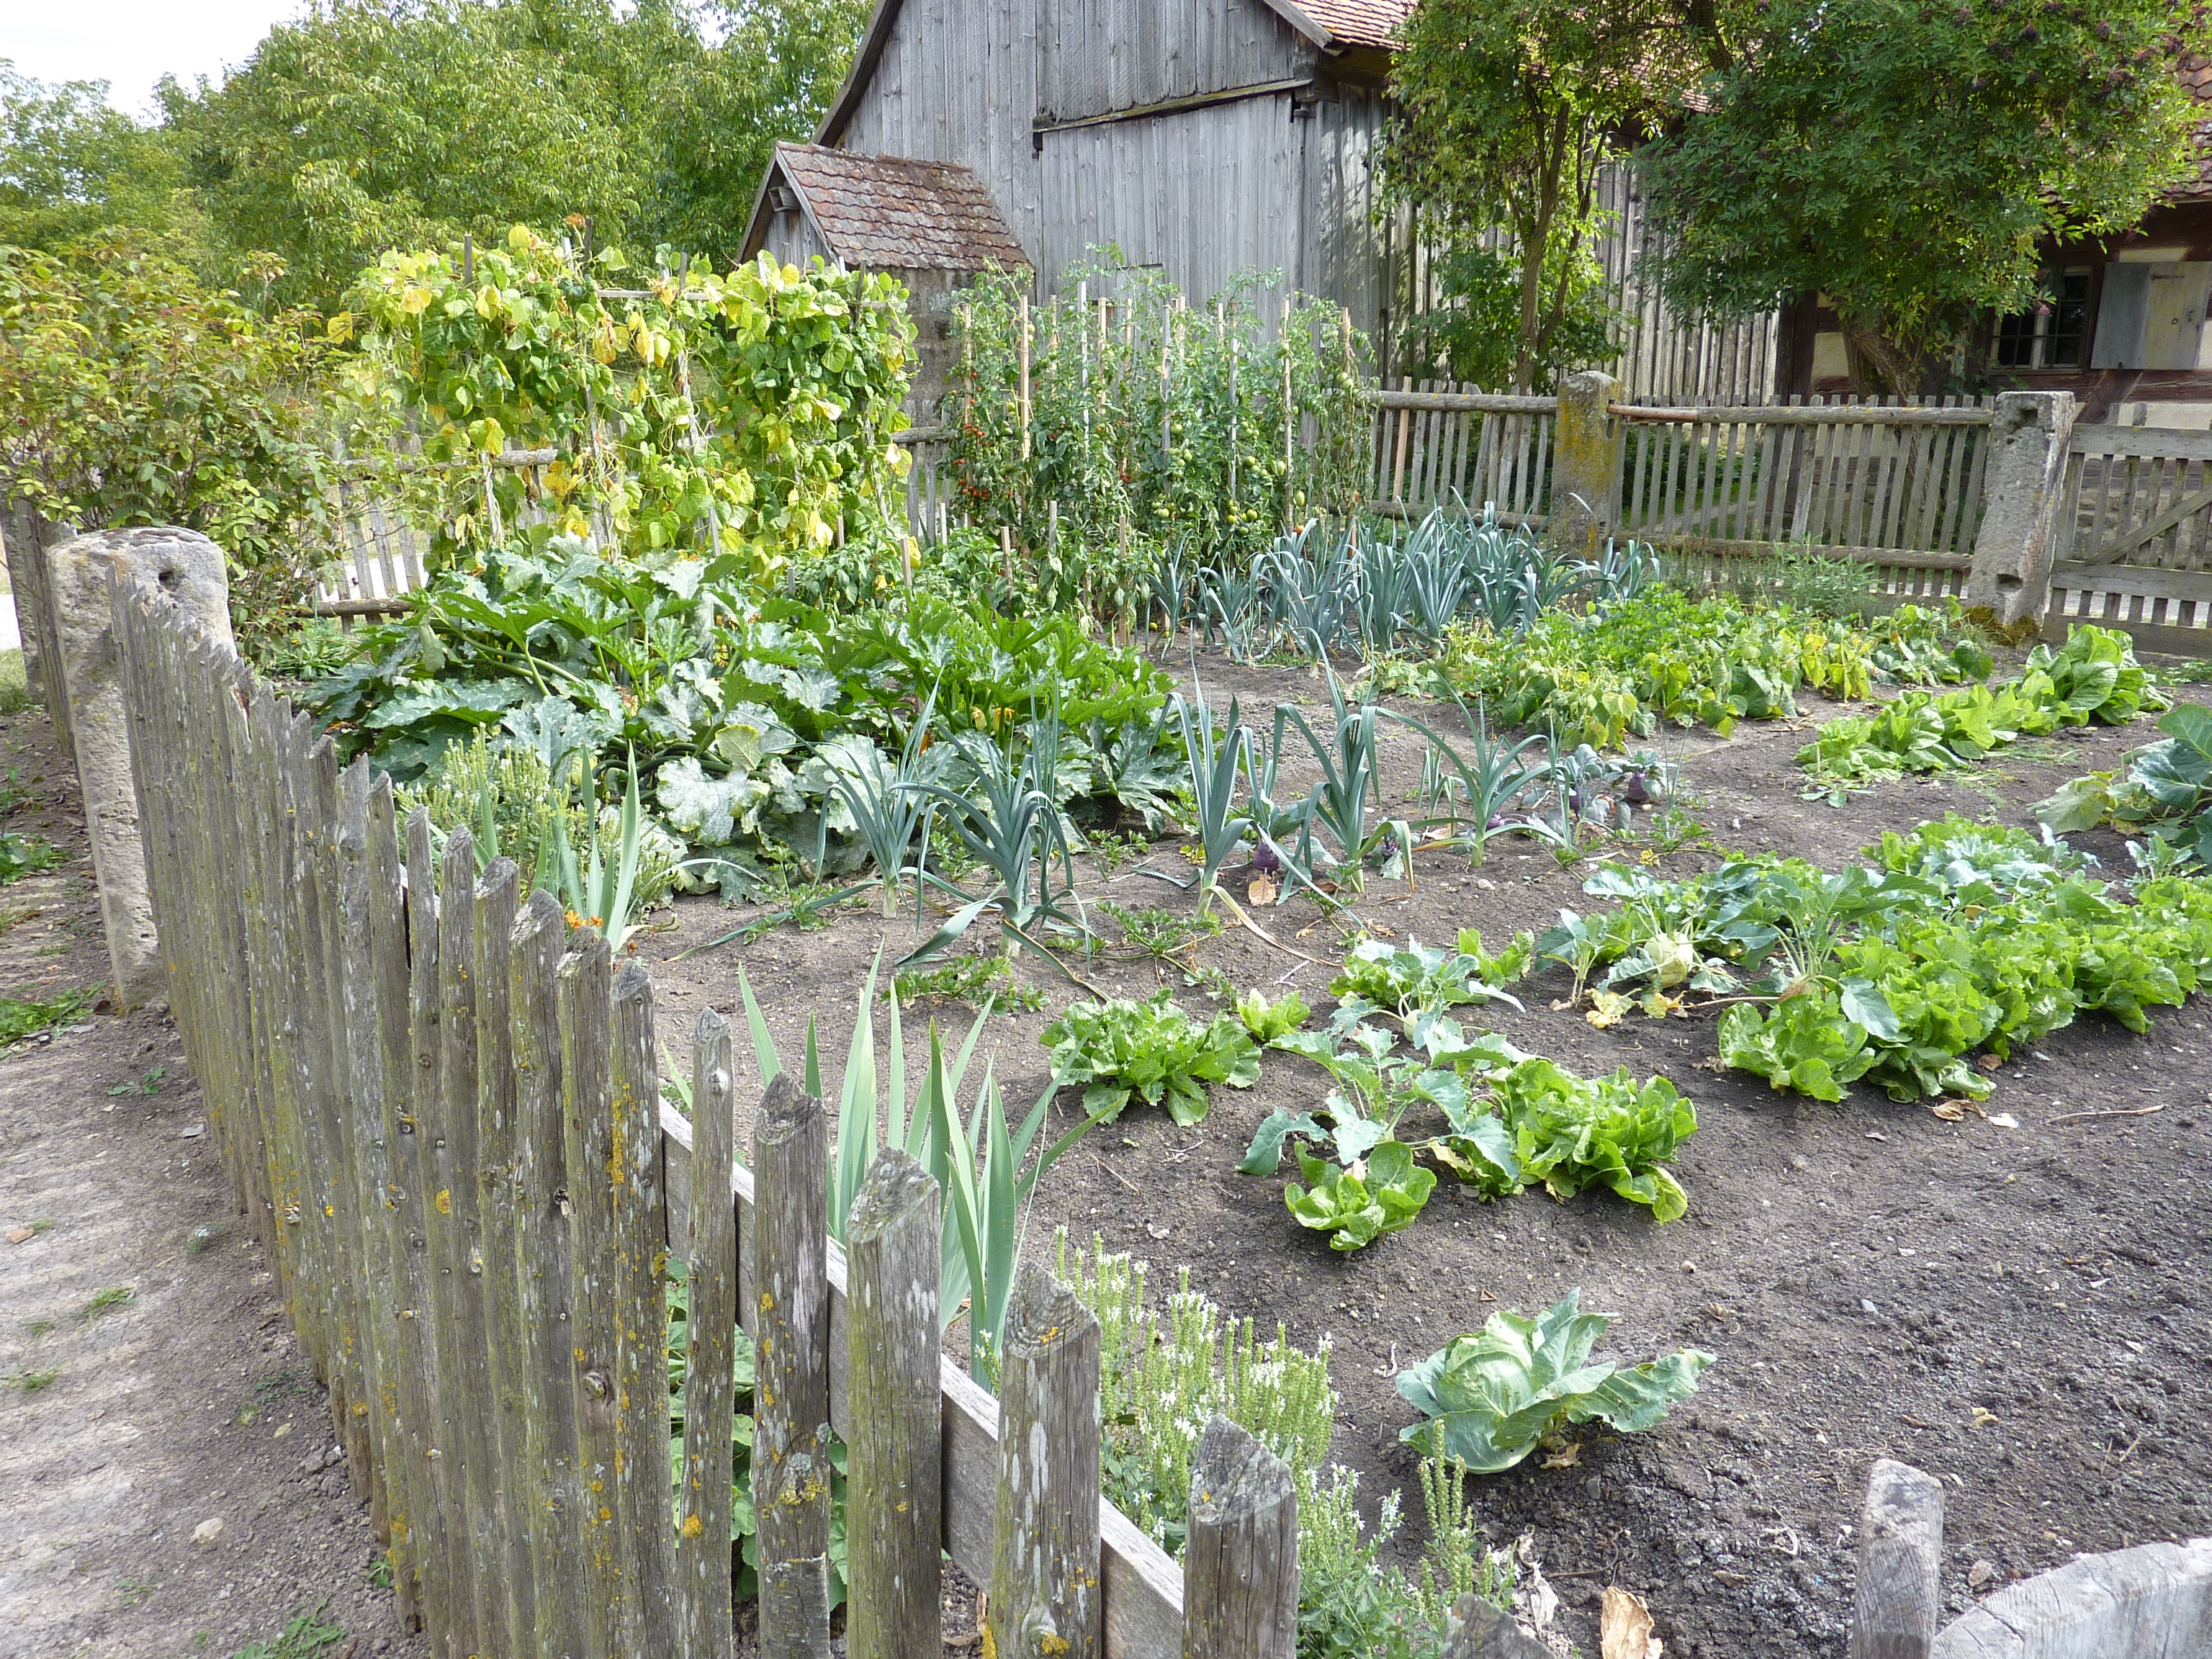 Vegetable garden planning for beginners great resource